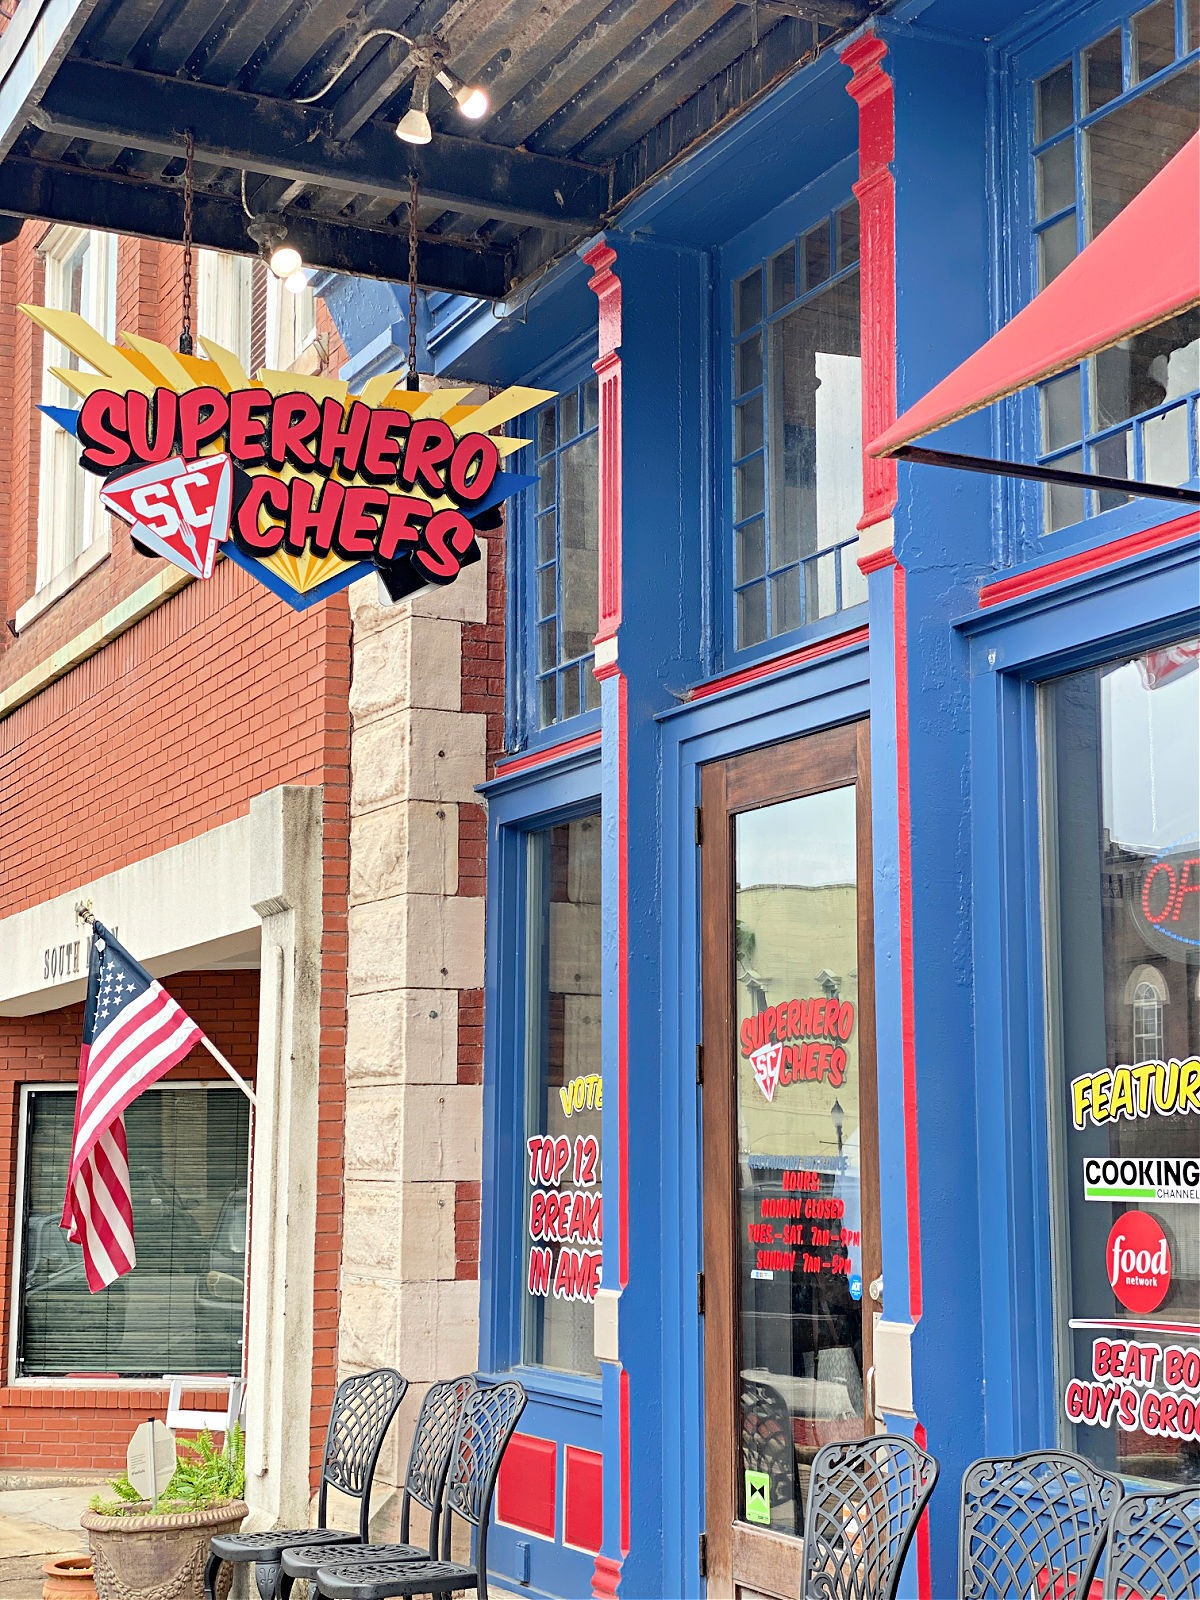 Superhero Chefs restaurant painted red and blue building.